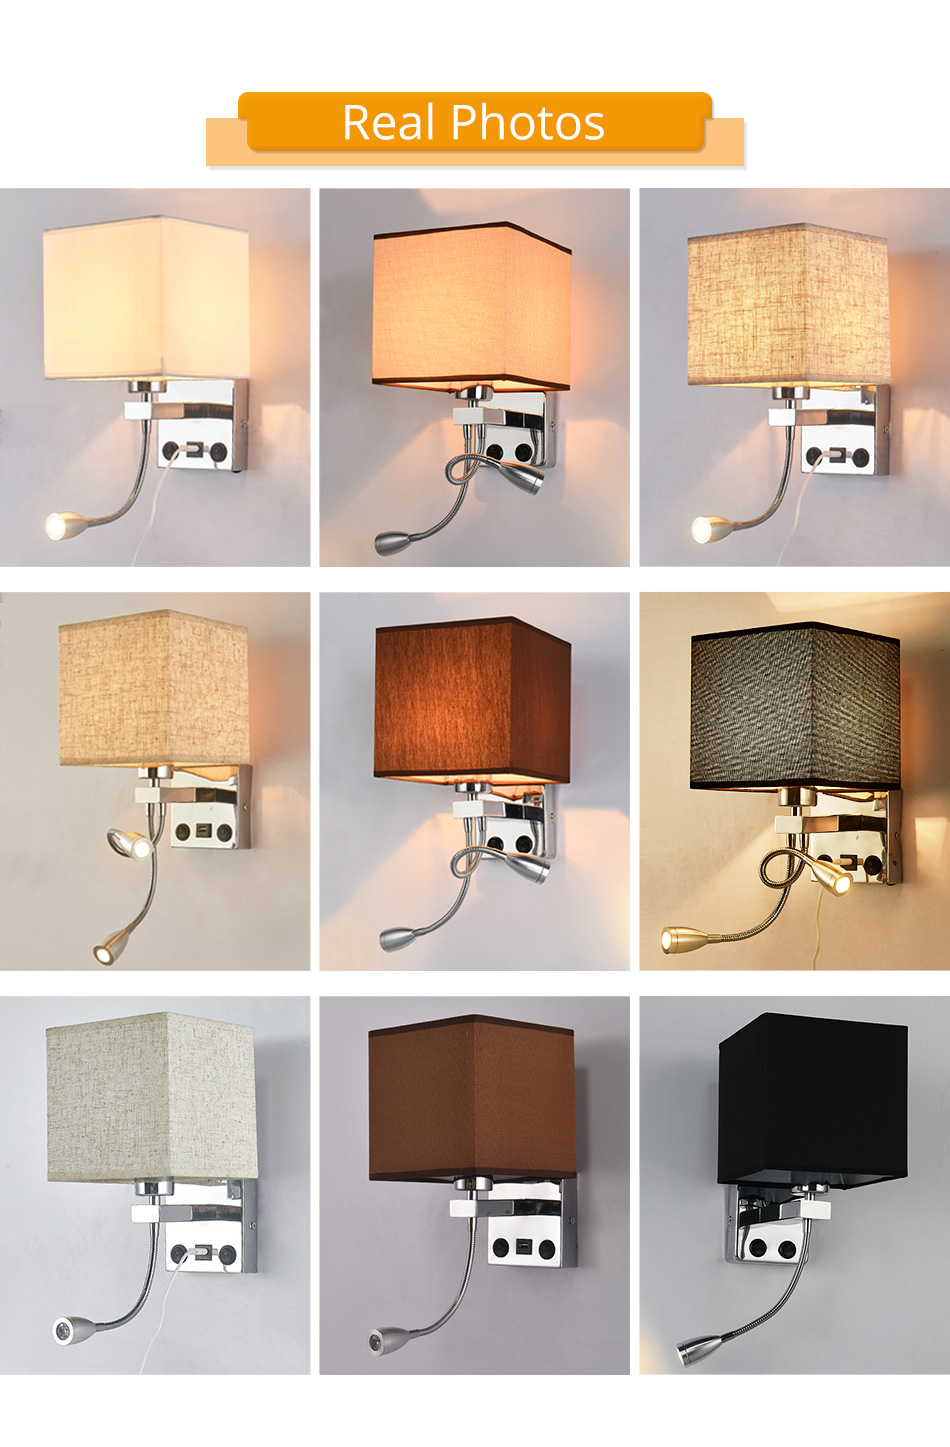 Modern Indoor LED Wall Lamp Bedside Bedroom Applique Sconce With Switch USB E27 Bulb Interior Headboard Home Hotel Wall Lights (10)